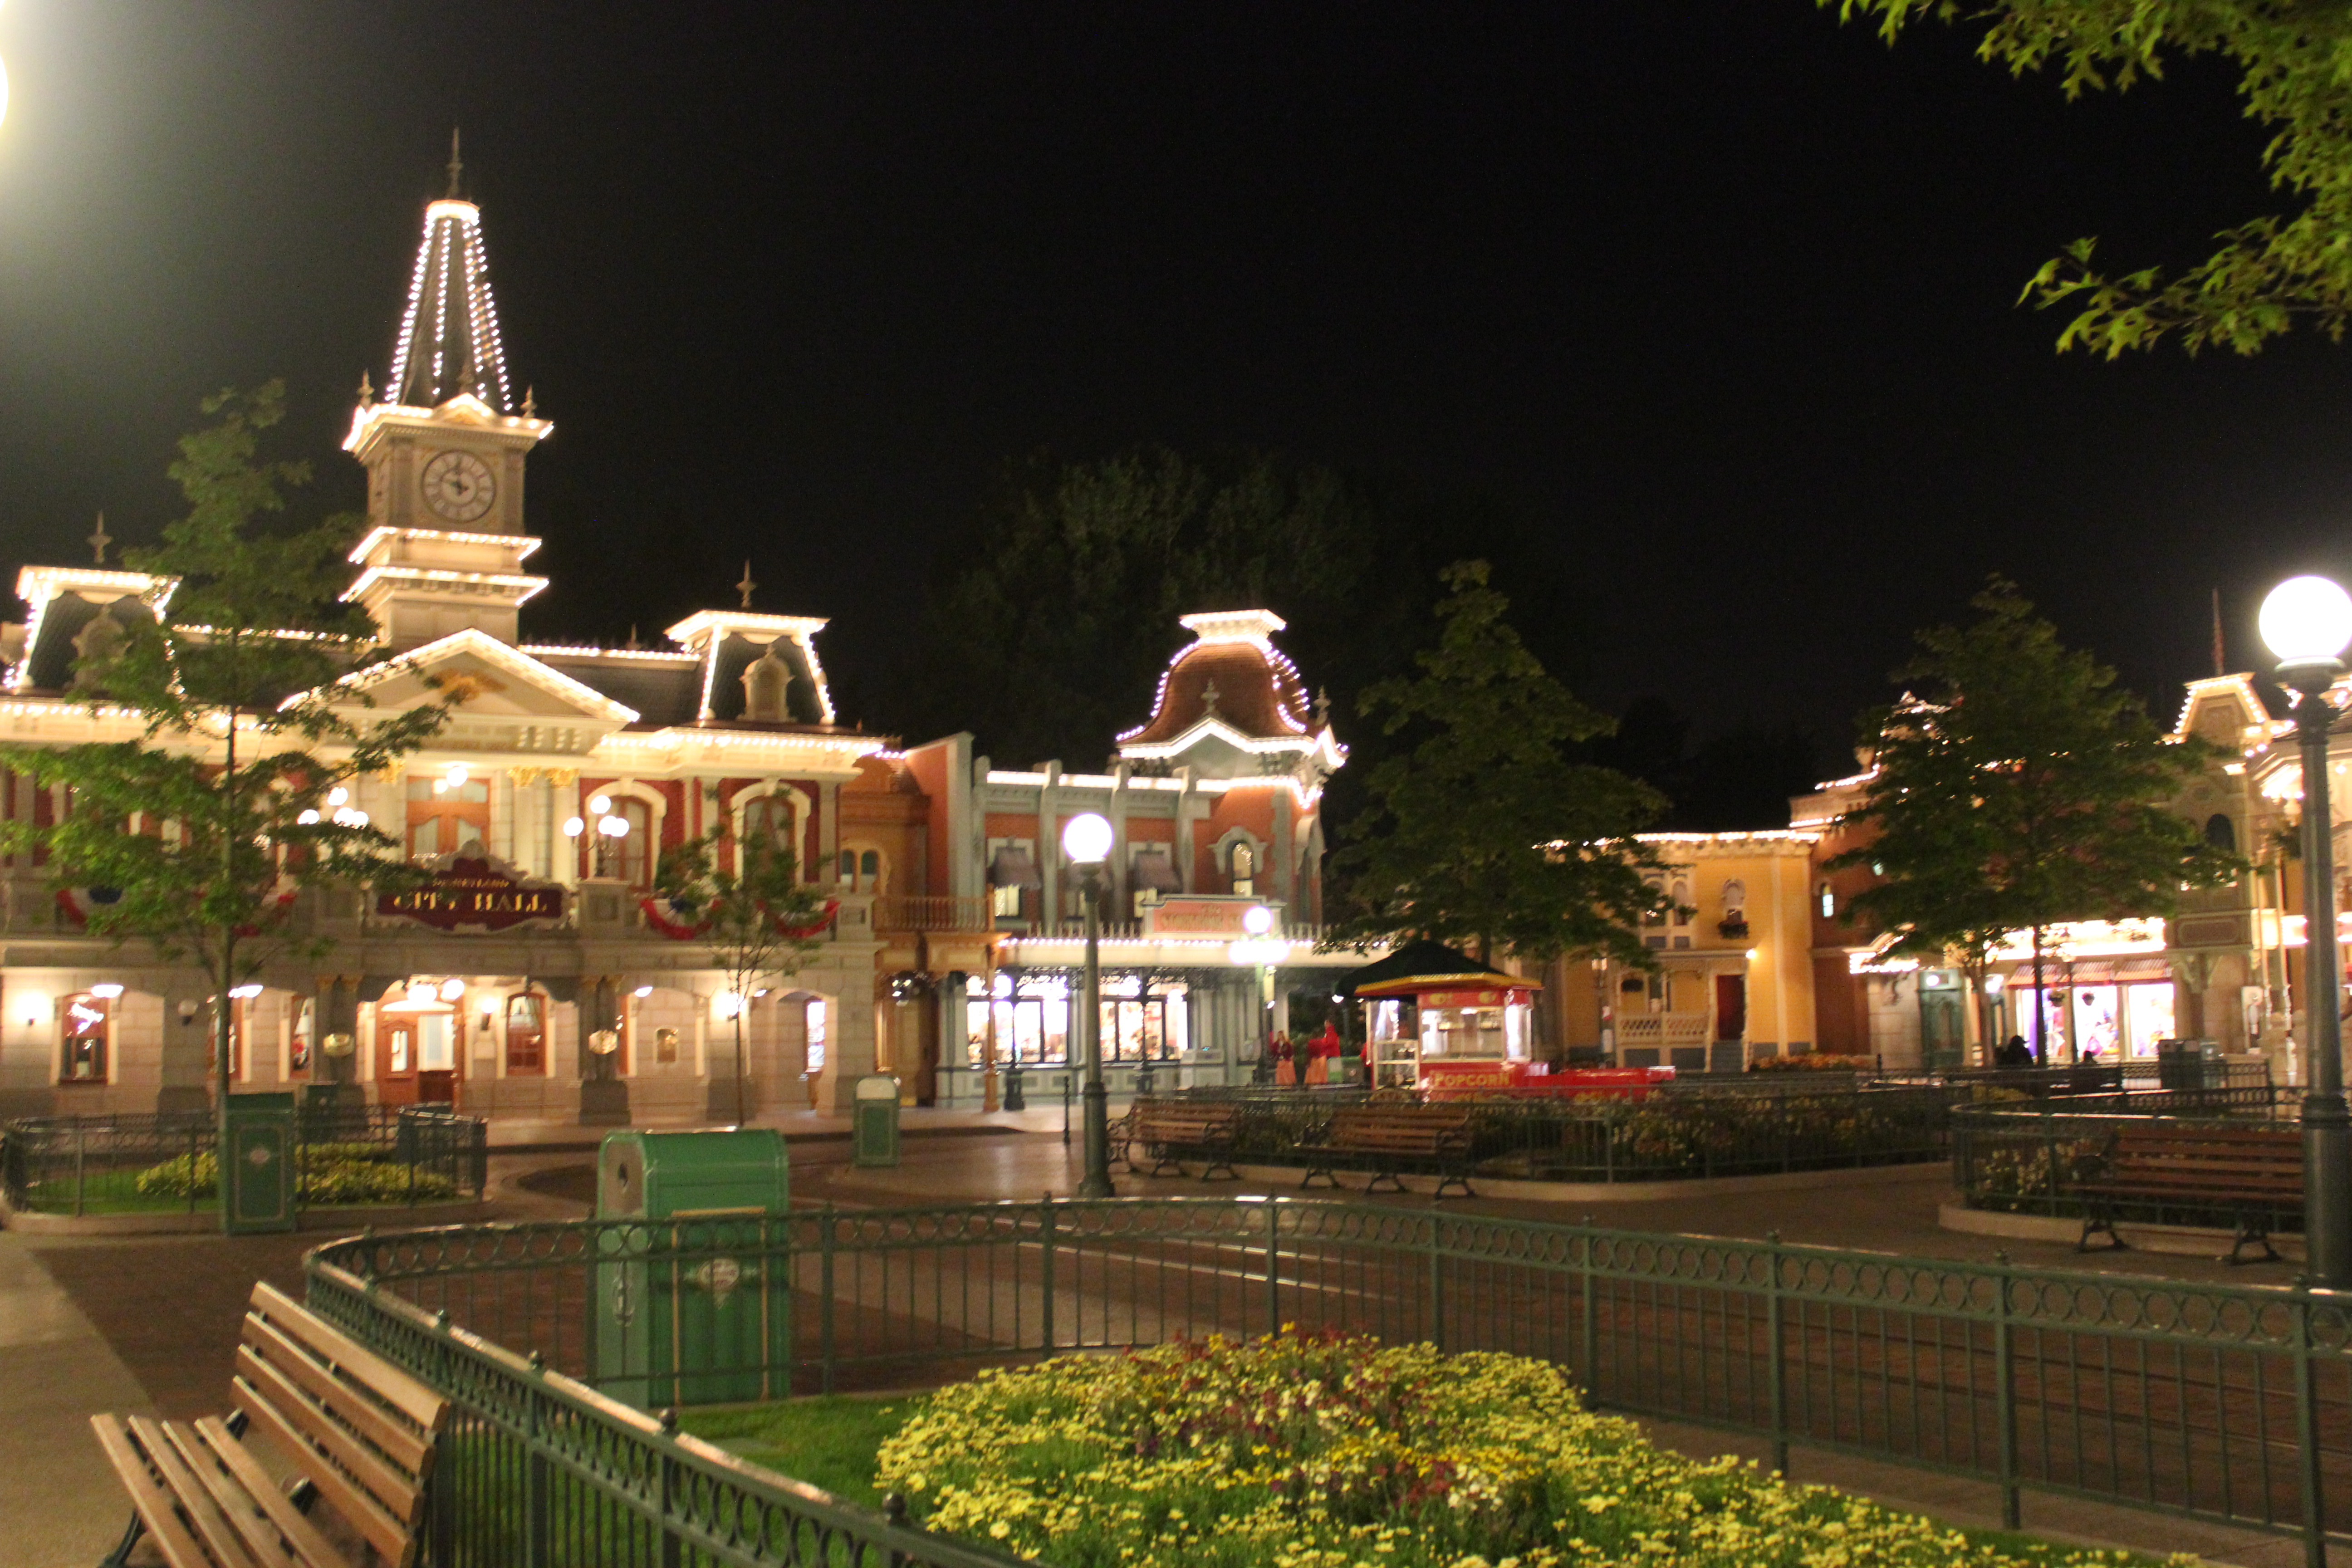 City Hall in Town Square at night